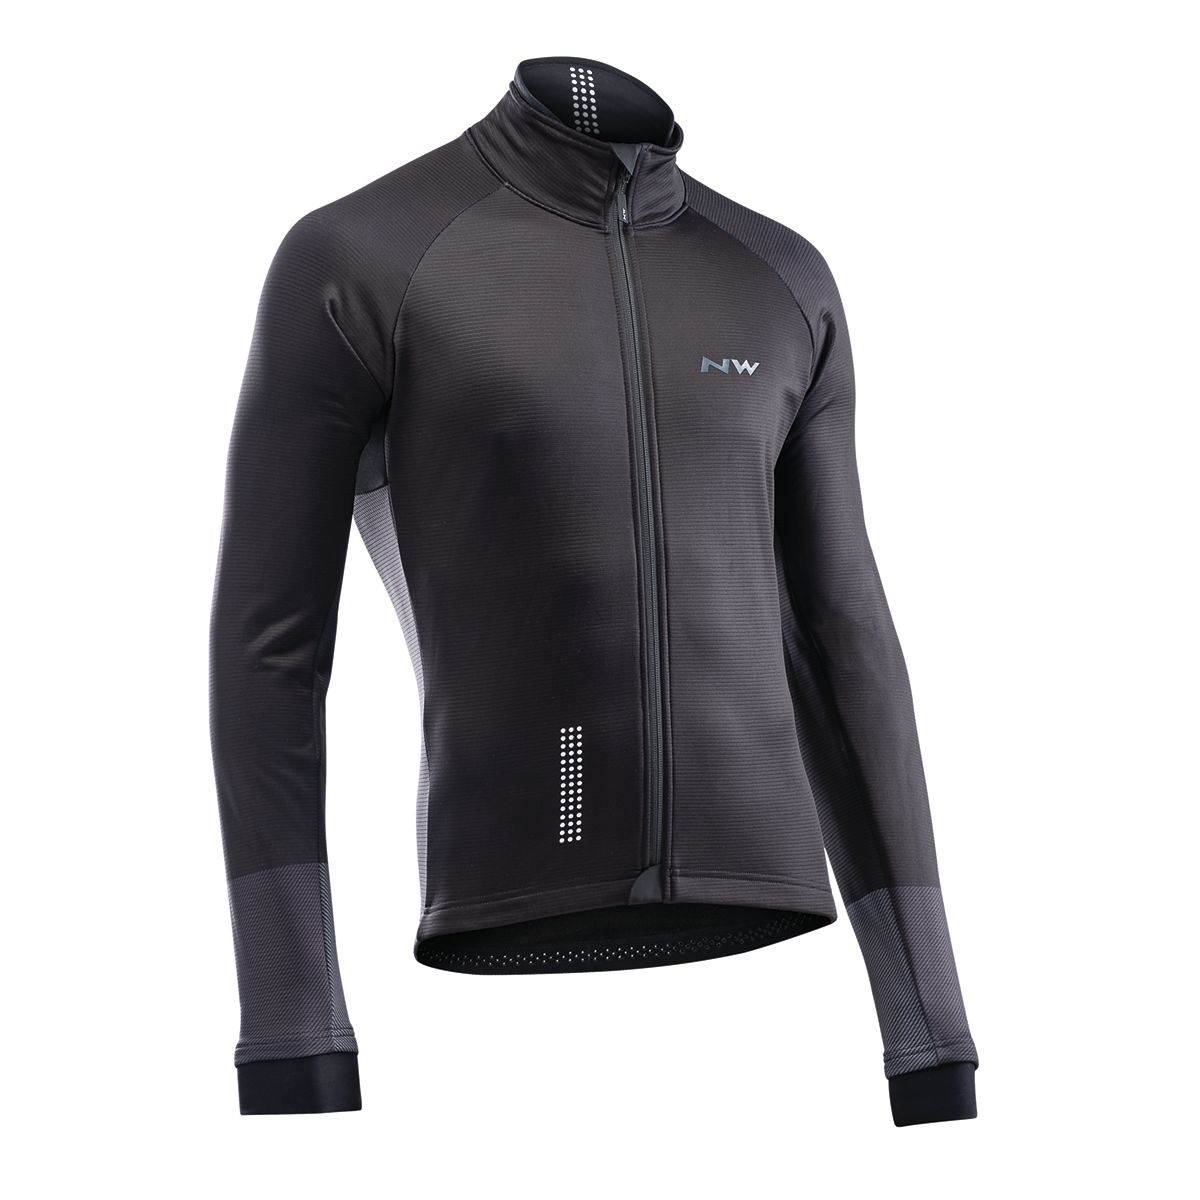 EXTREME 3 JACKET TOTAL PROTECTION Thermo Fahrradjacke